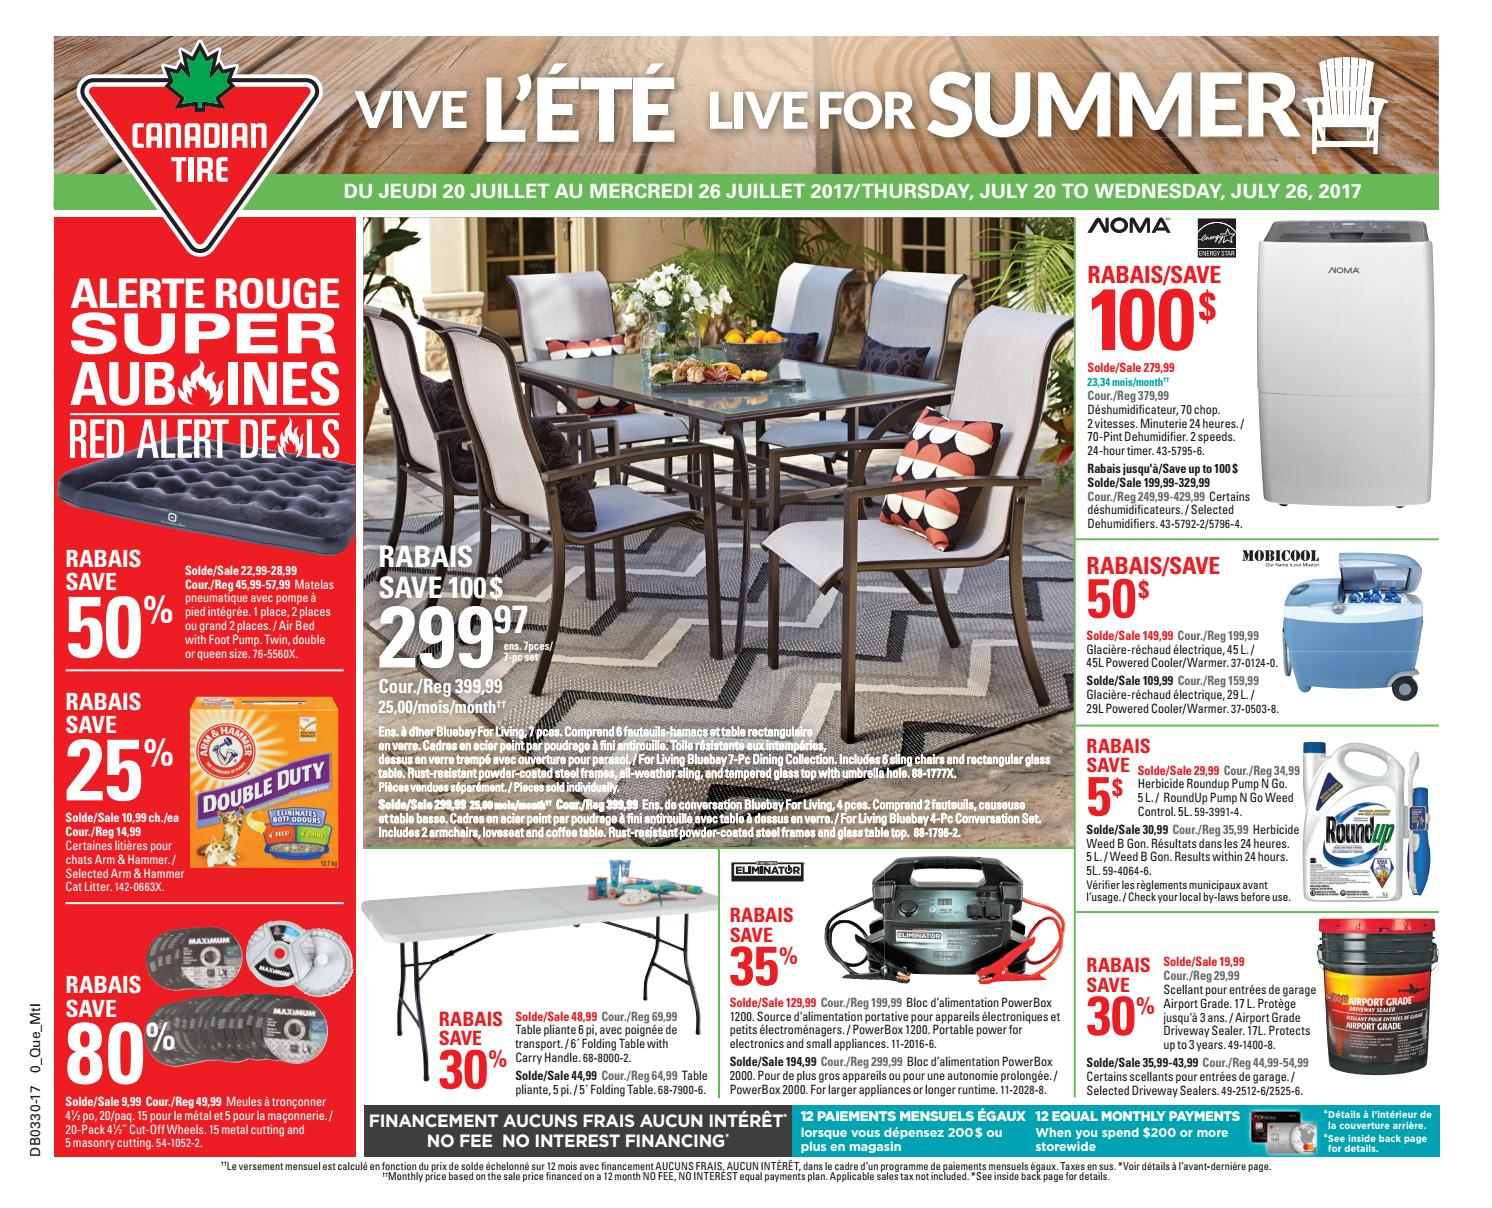 Pouf Exterieur Canadian Tire Publisac 2017 Flyer Ctc Wk30 Bil Mtl By Salewhale Issuu